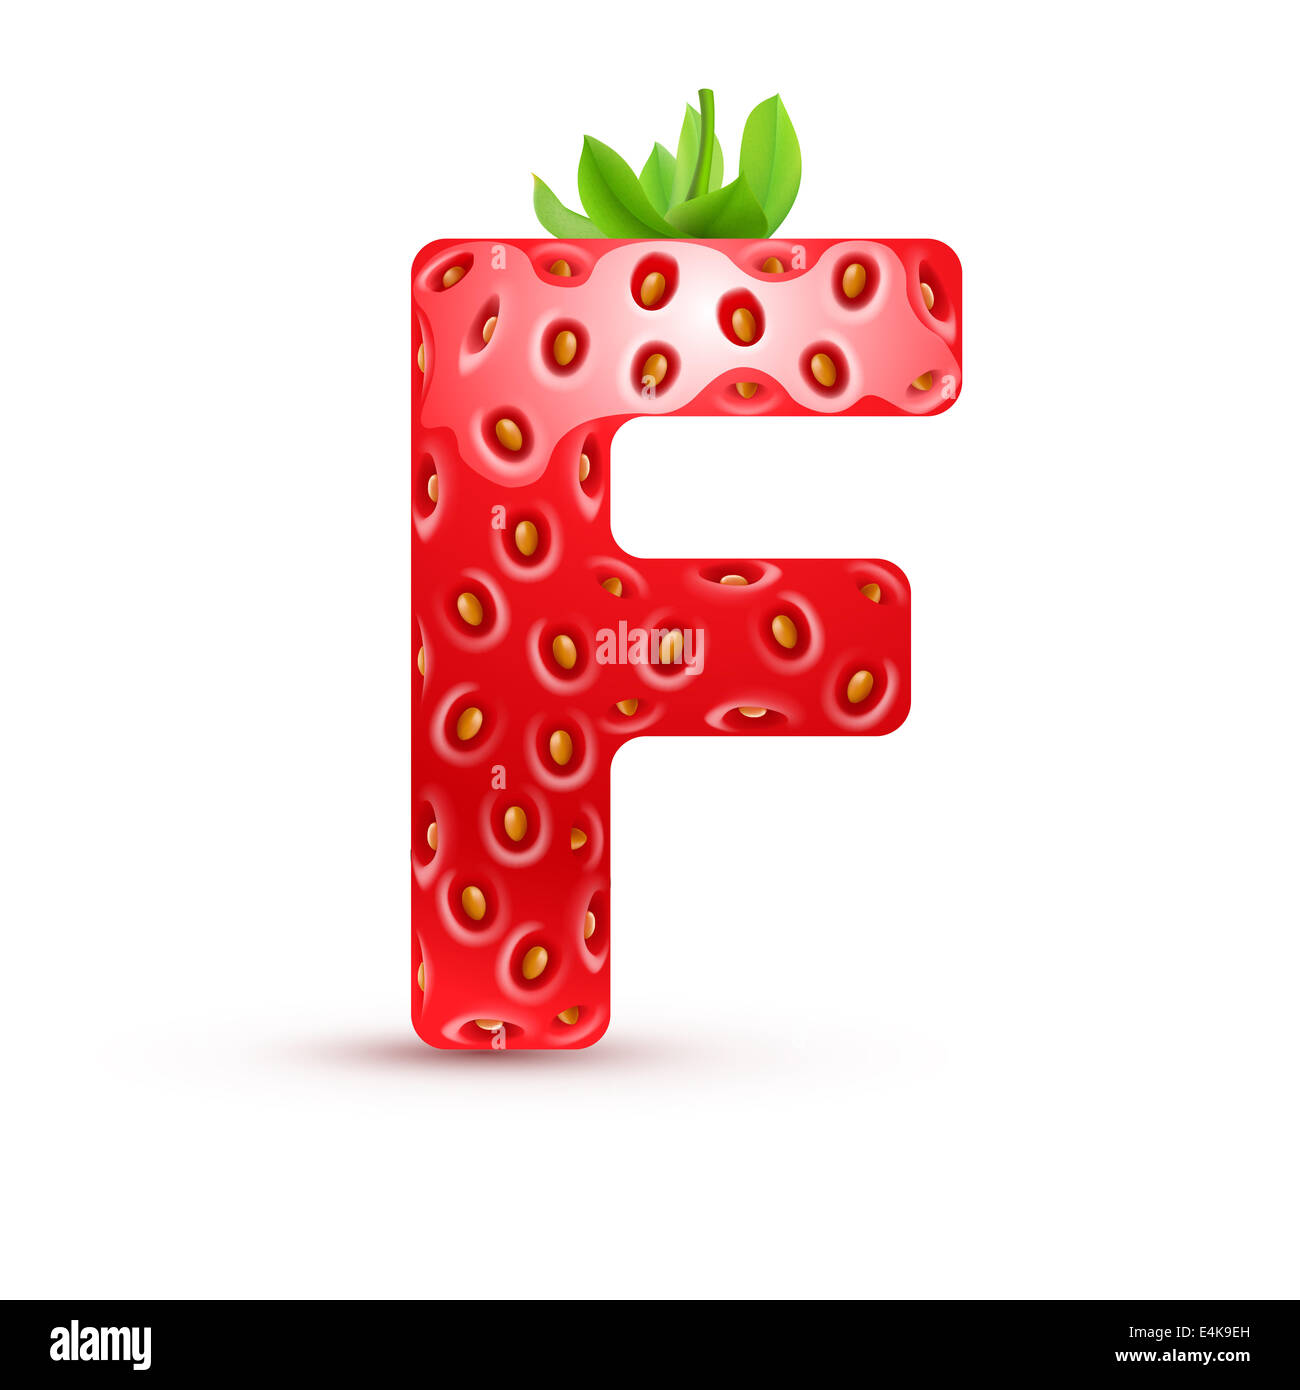 Letter F In Strawberry Style With Green Leaves Stock Photo